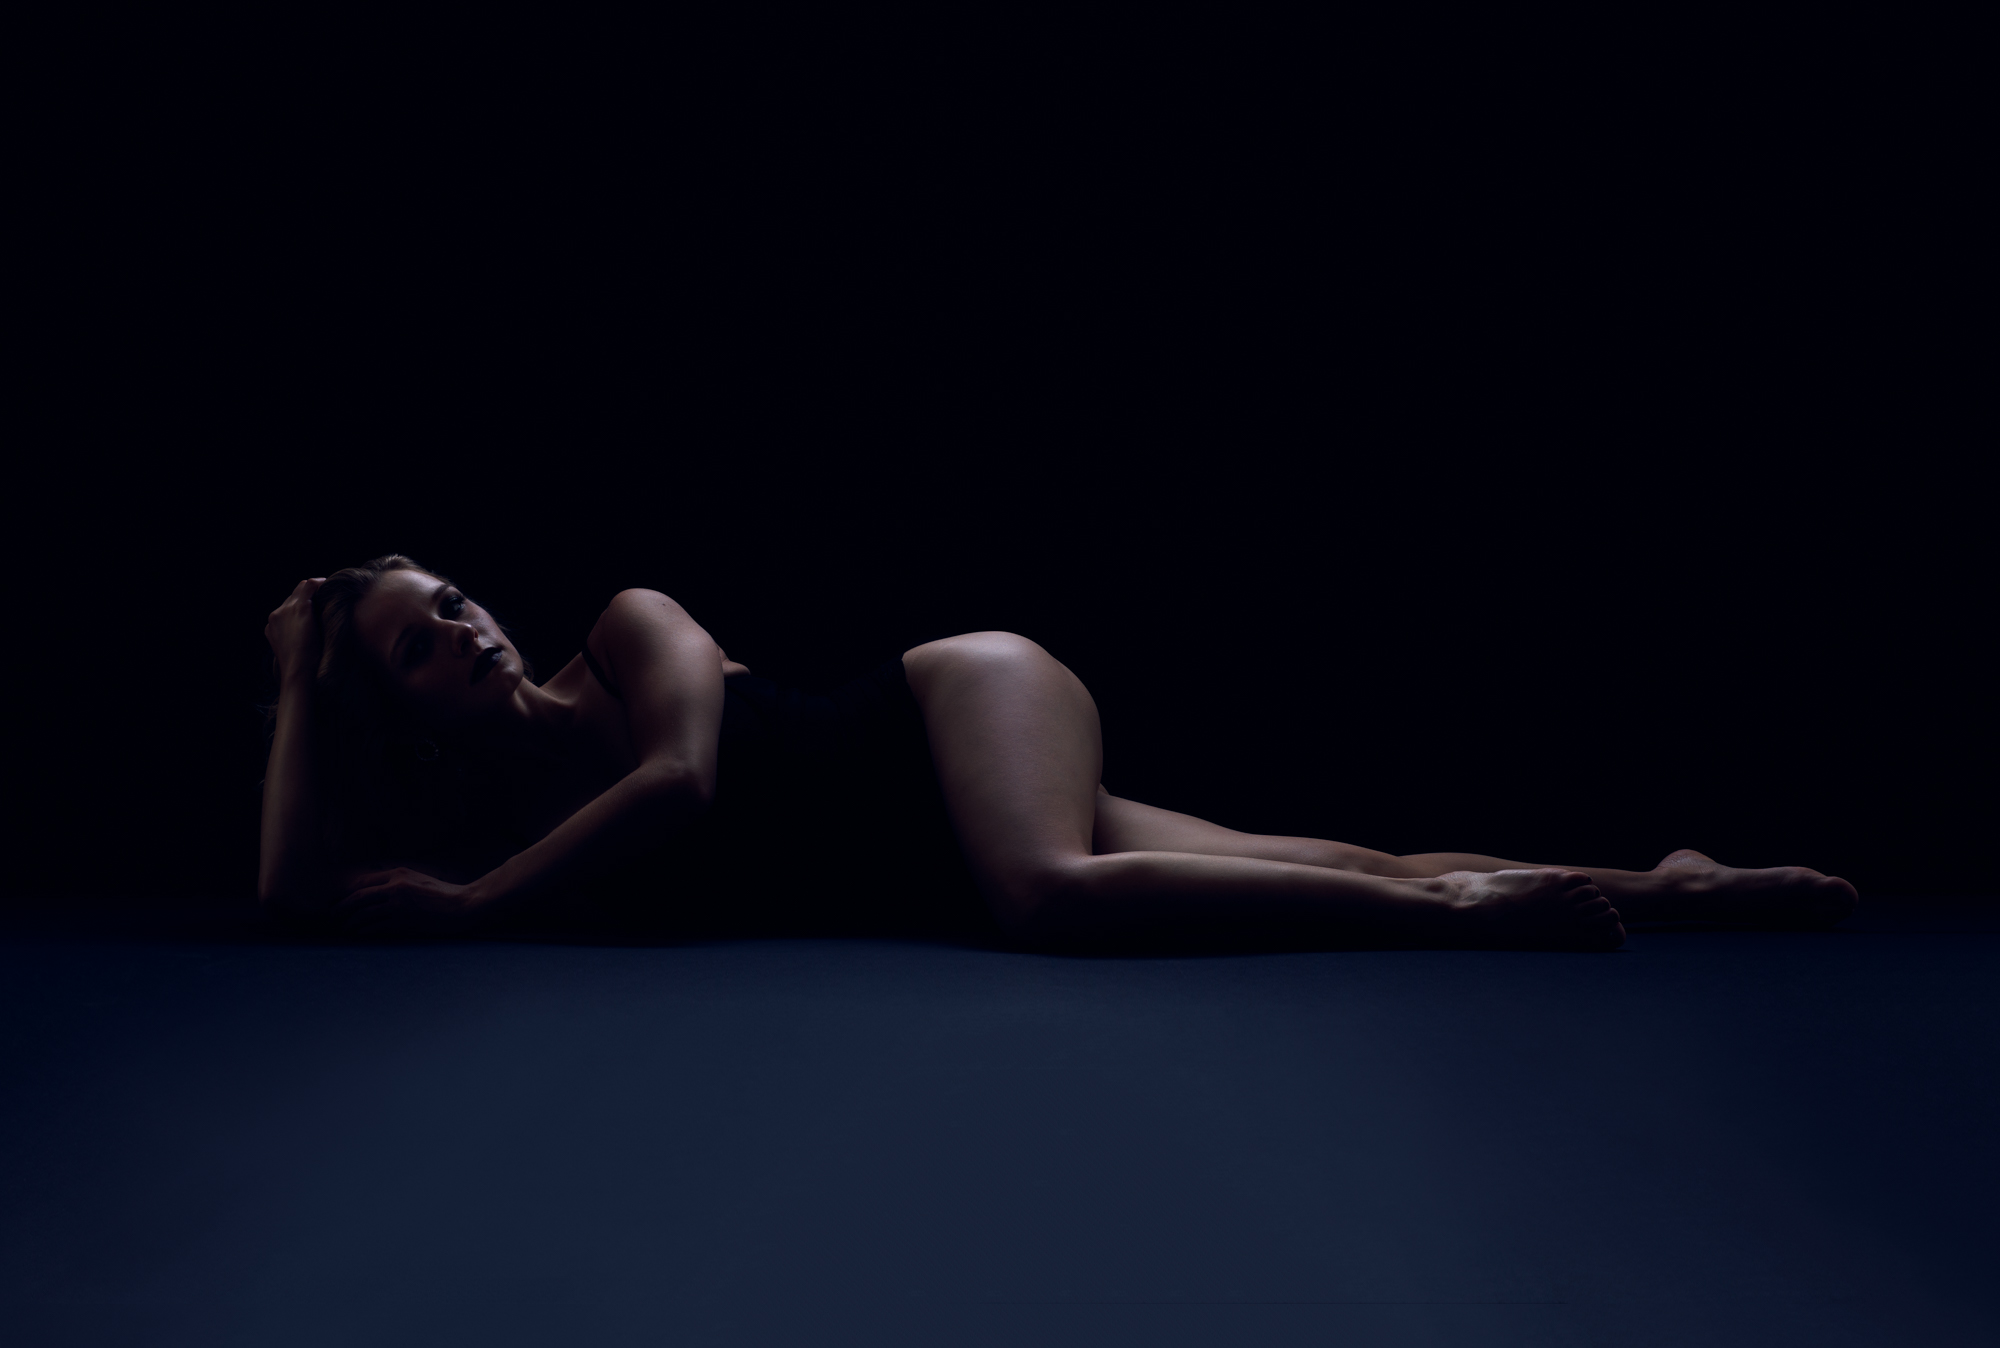 Moody bluish tones with woman lying on her side with her head propped up by her right hand.